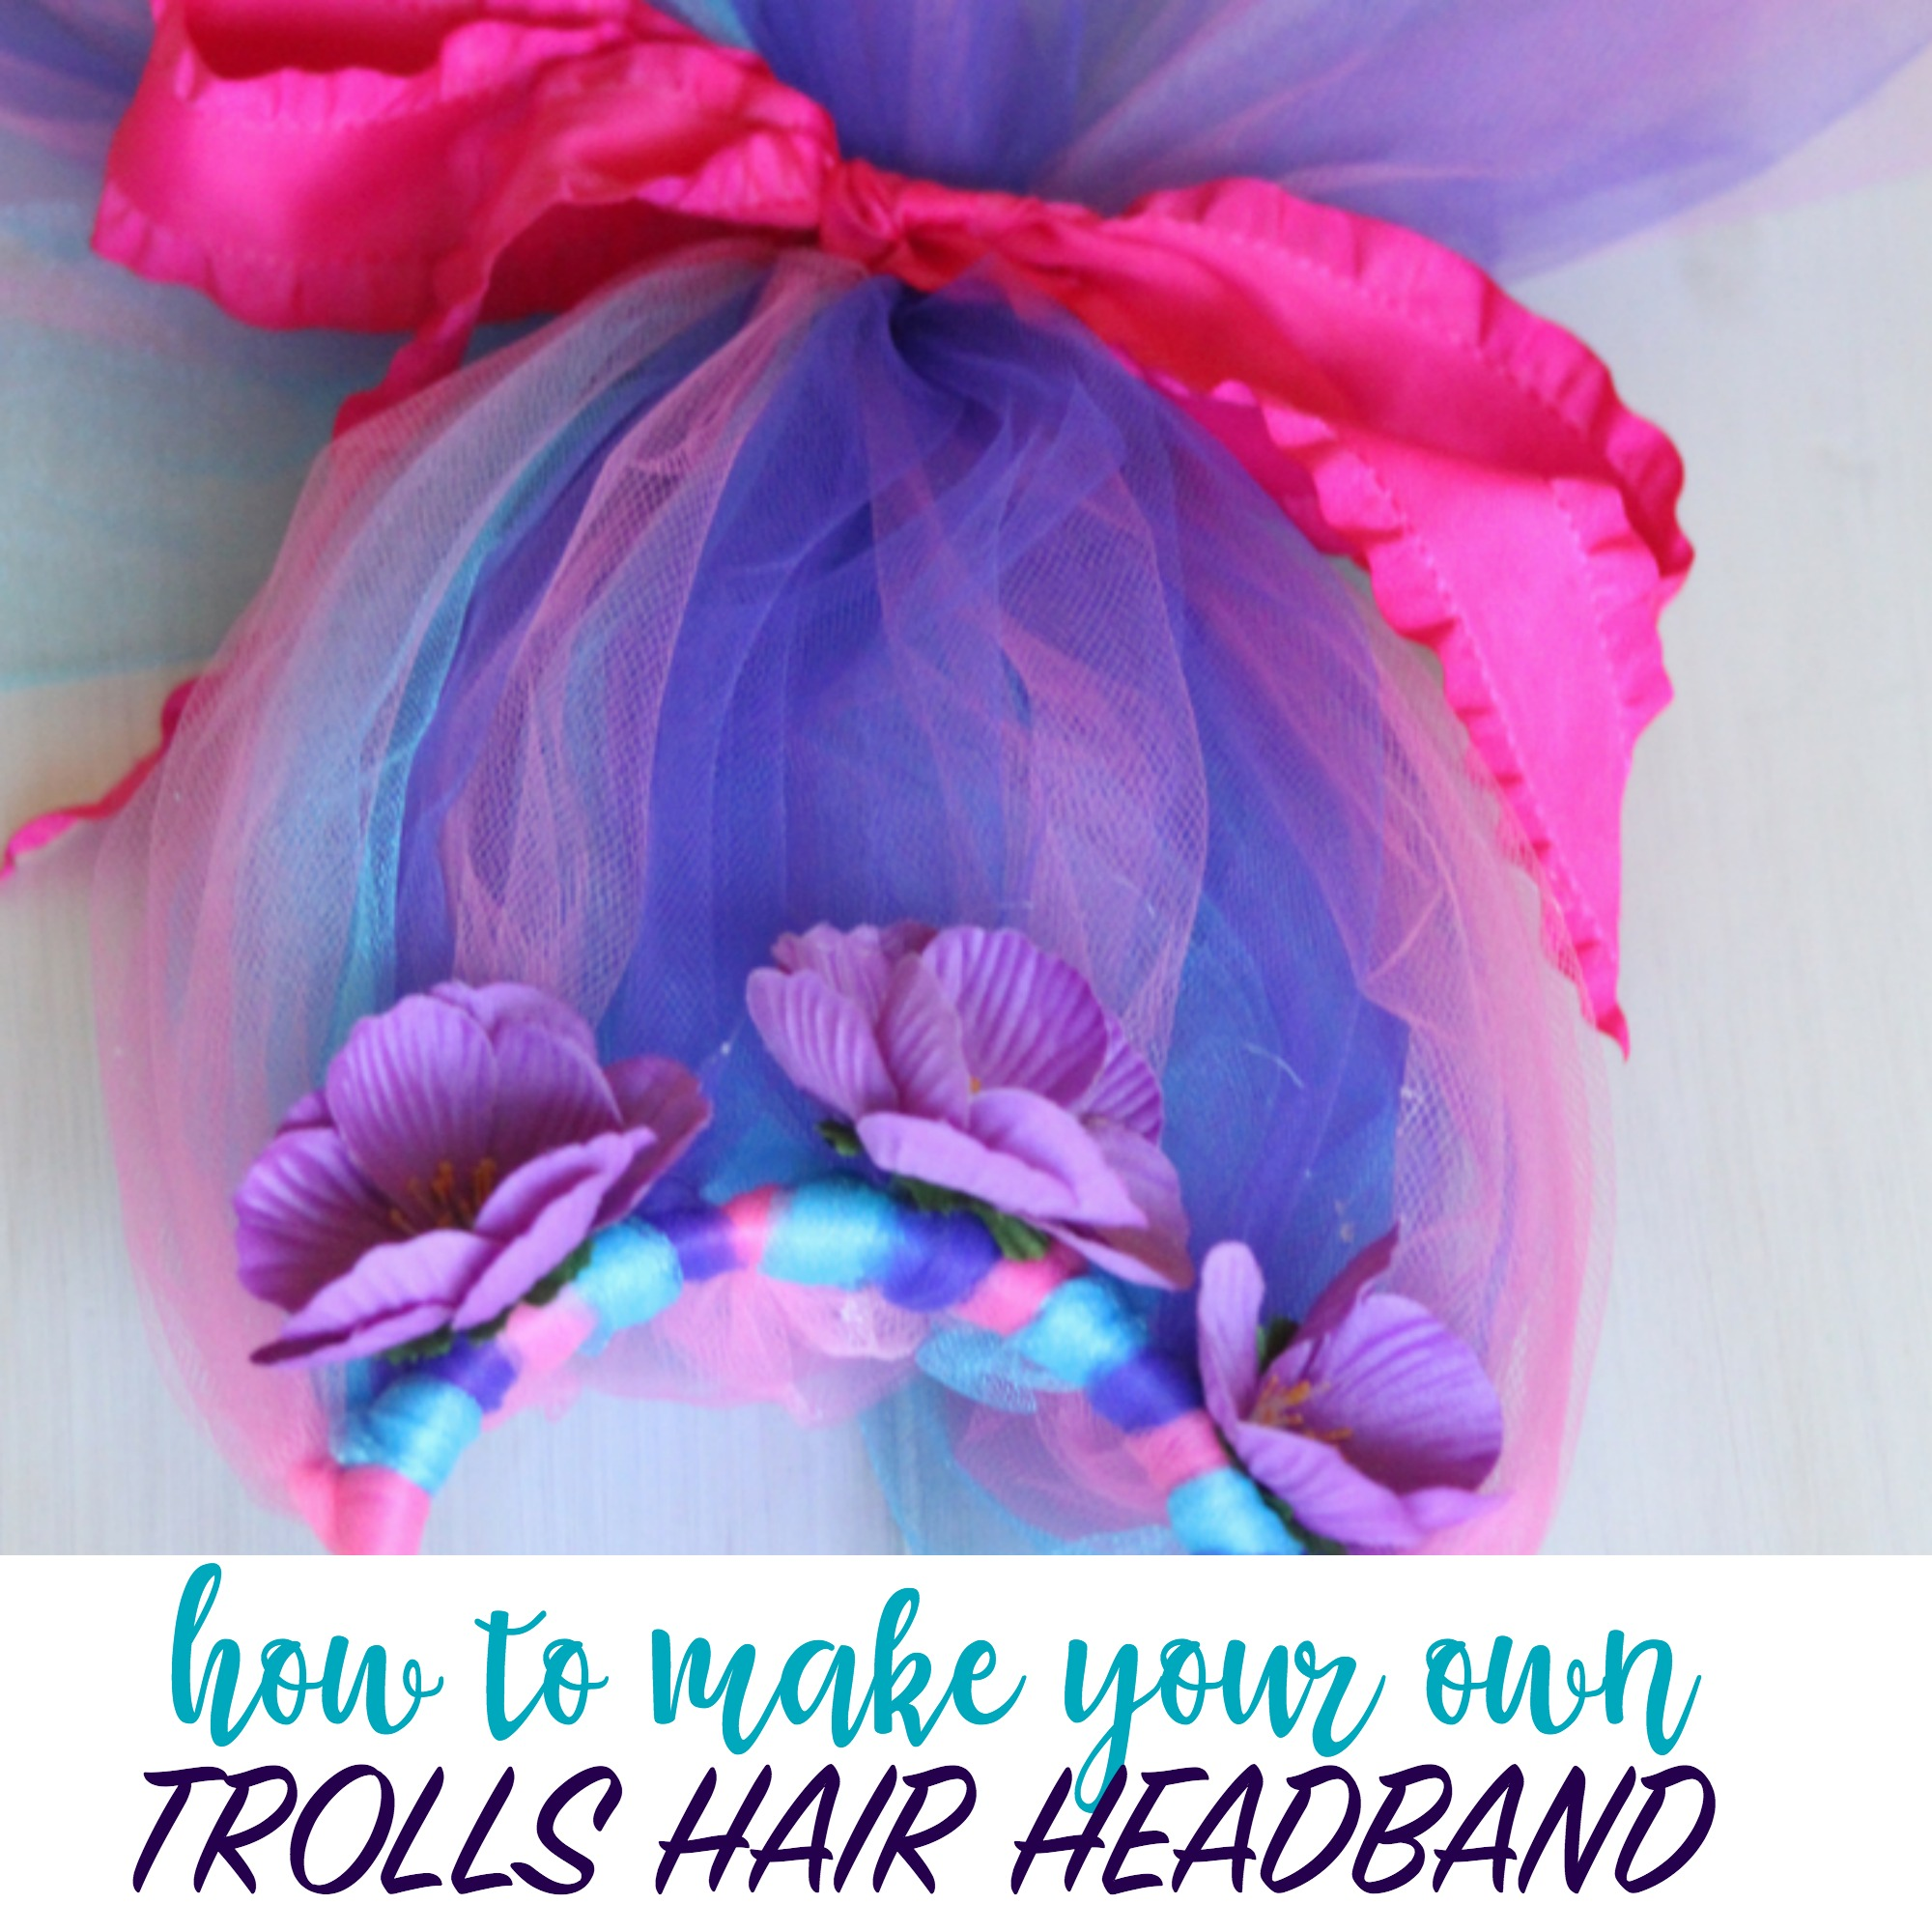 Trolls Themed Games Activities And Party Favors DIY TROLLS HAIR HEADBAND